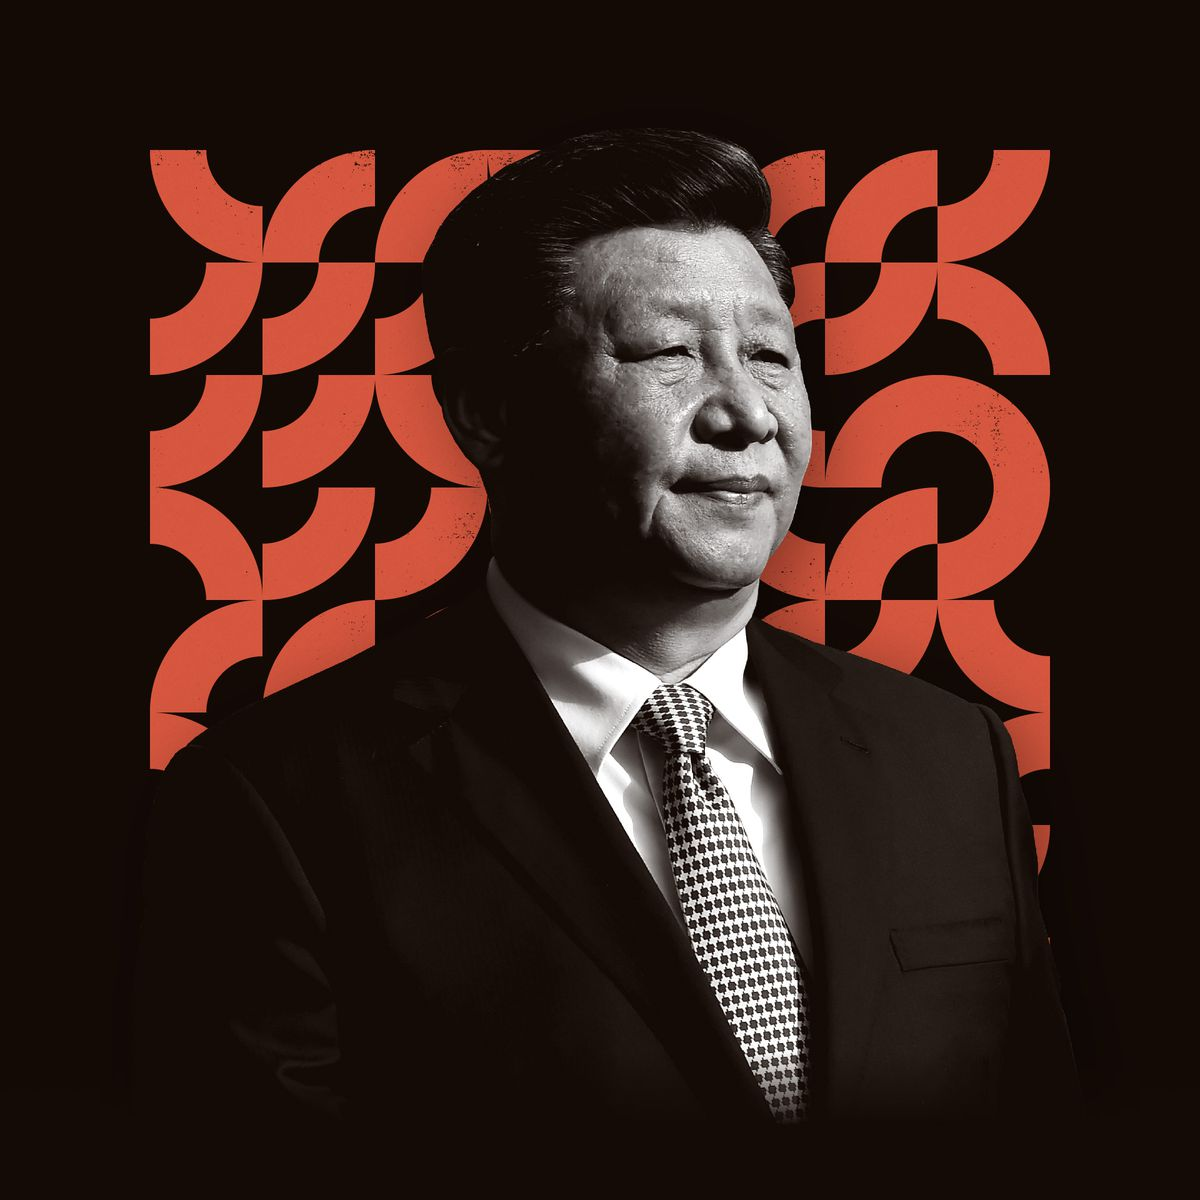 A photo illustration featuring Chinese president Xi Jinping.